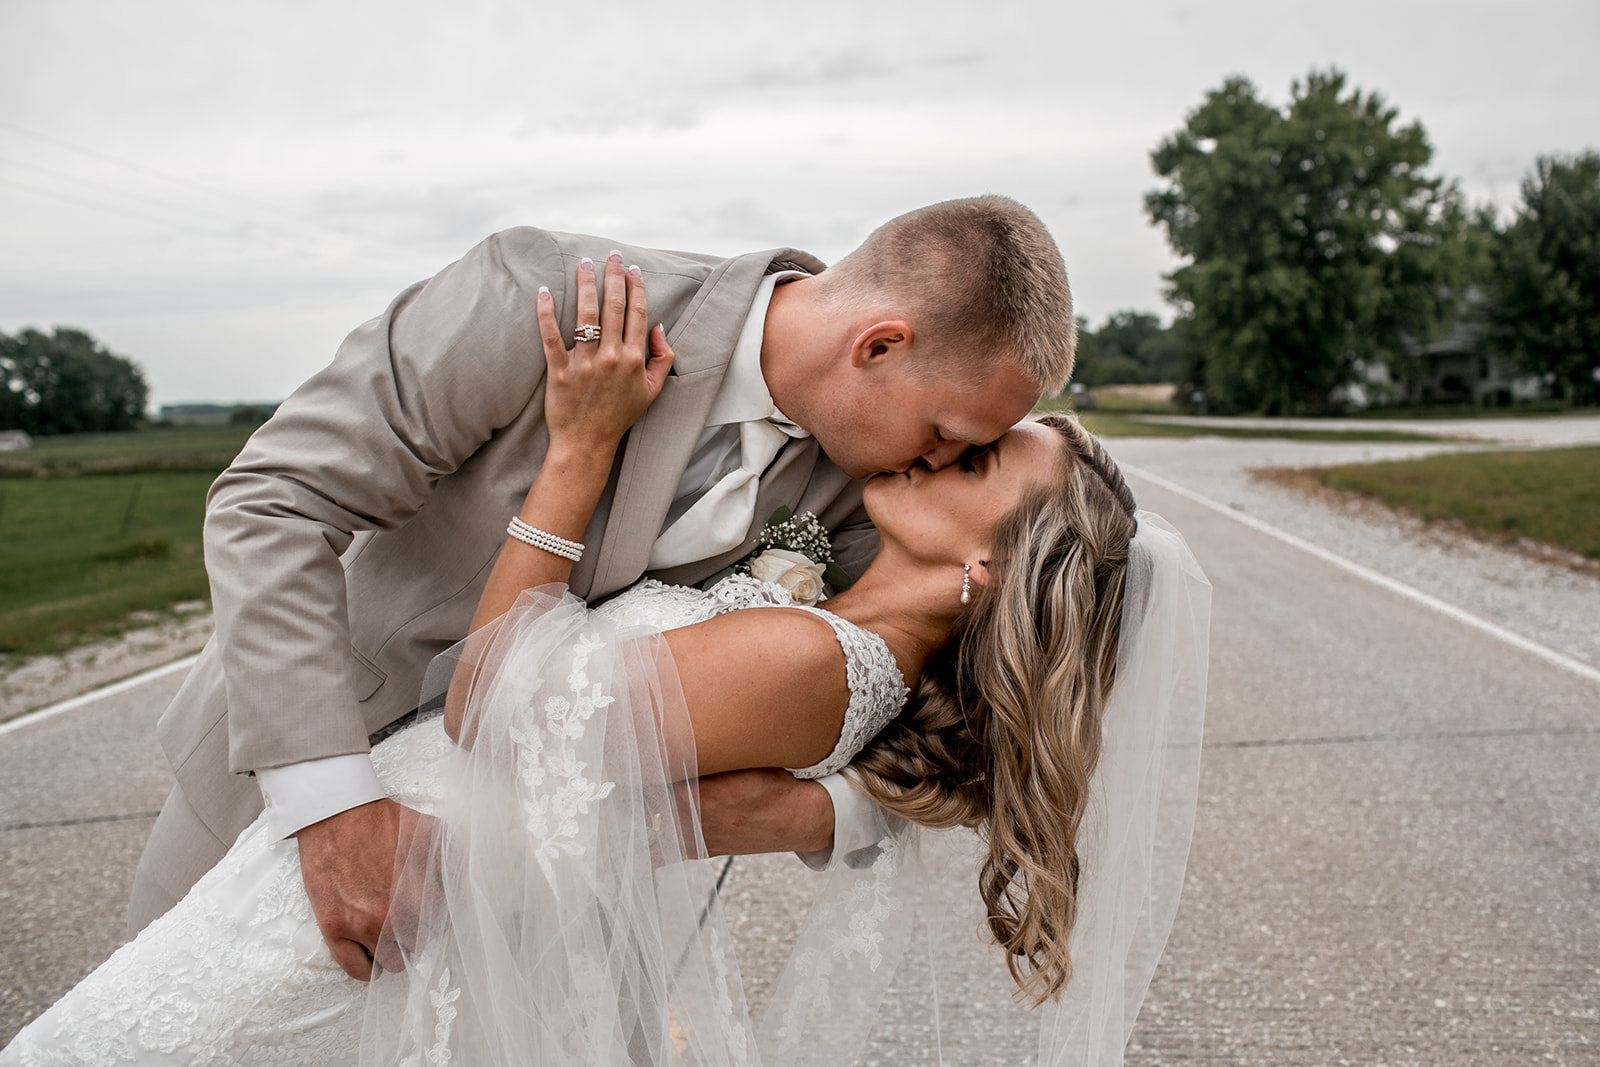 Des Moines Iowa wedding couple doing a dip kiss.